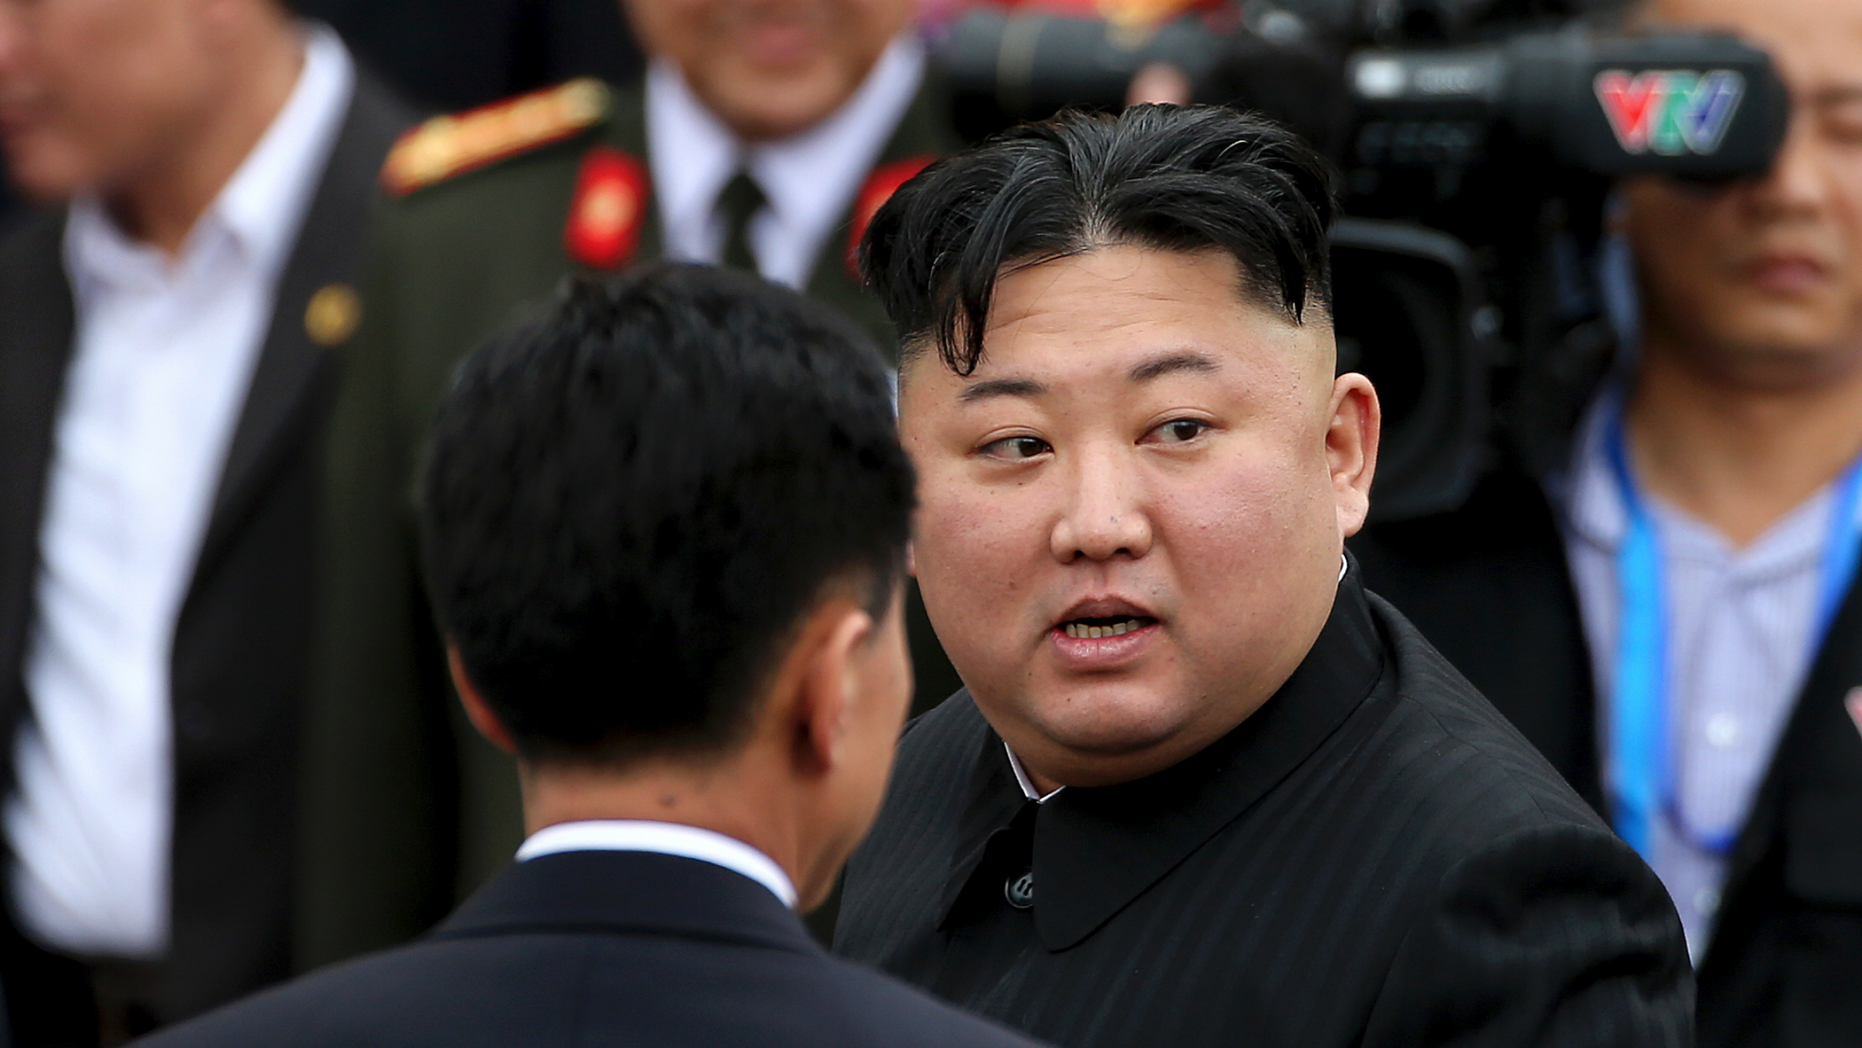 In this March 2, 2019, photo, North Korean leader Kim Jong Un prepares to depart Dong Dang railway station in Dong Dang, Vietnamese border town. North Korea on Tuesday, April 23, confirmed that Kim will soon visit Russia to meet with President Vladimir Putin.